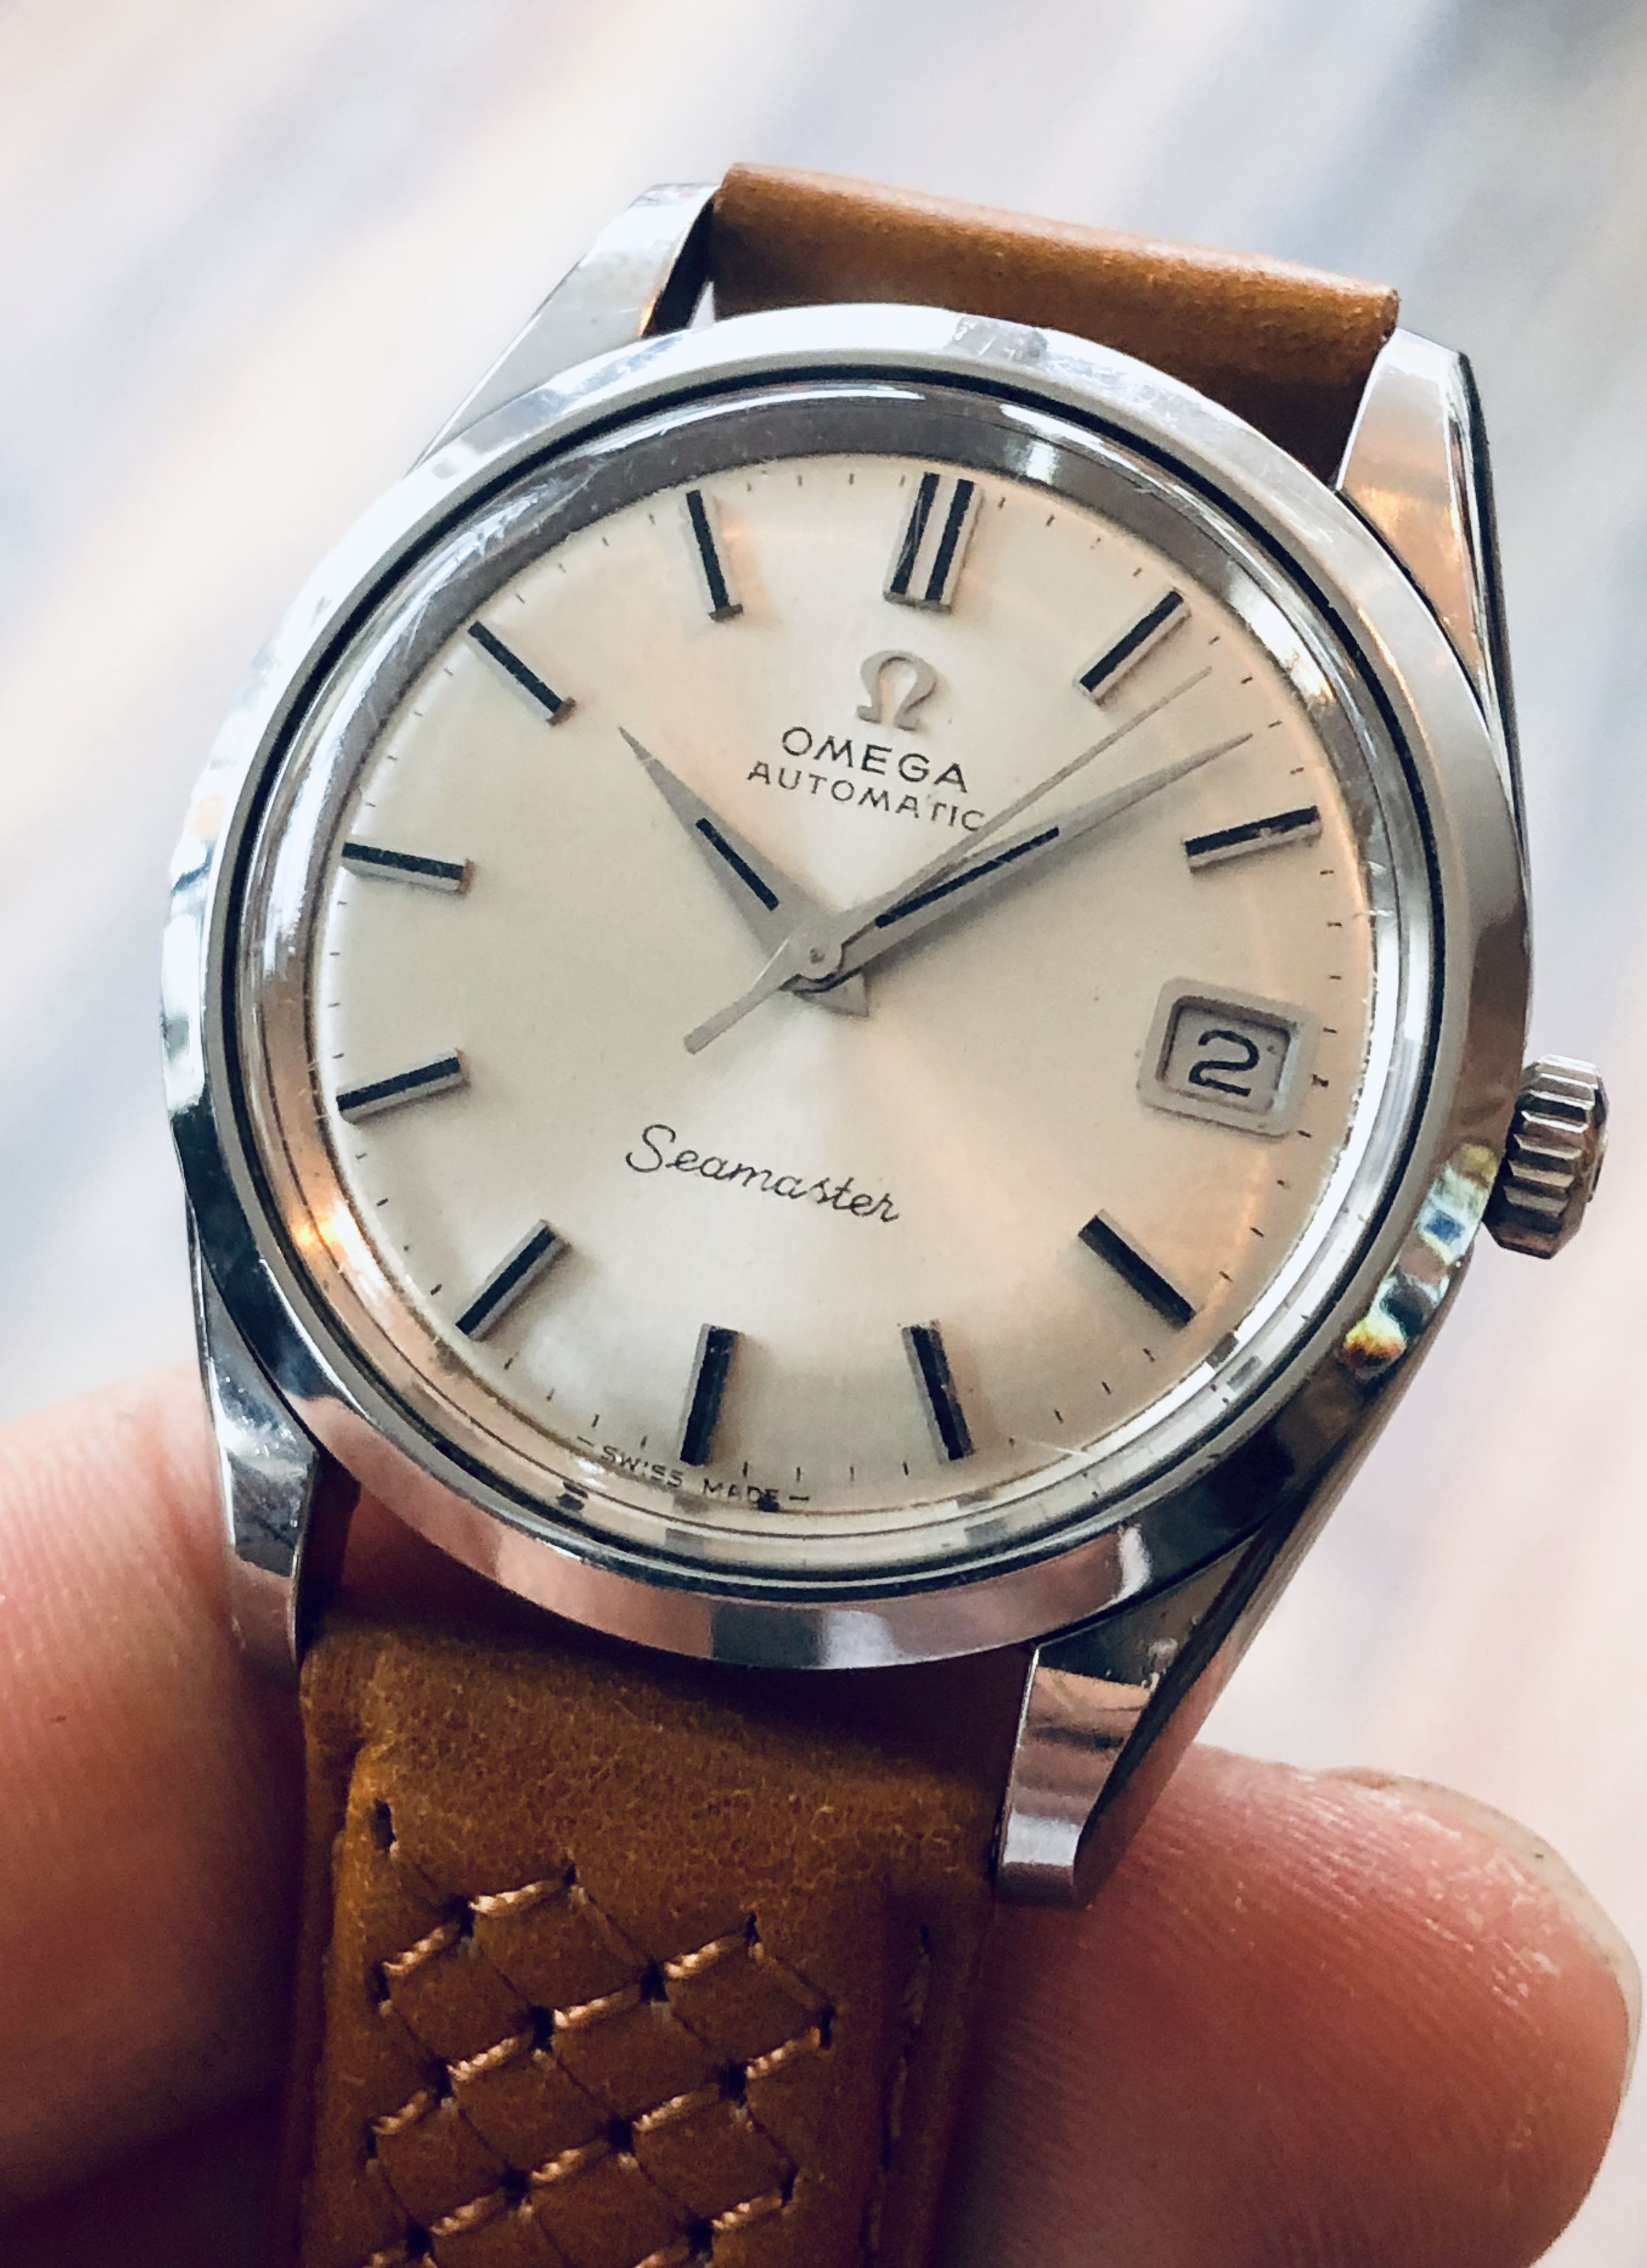 Omega Seamaster Stainless Steel Automatic Calibre 565 Men S Vintage Watch Luxury Watches For Men Vintage Watches Omega